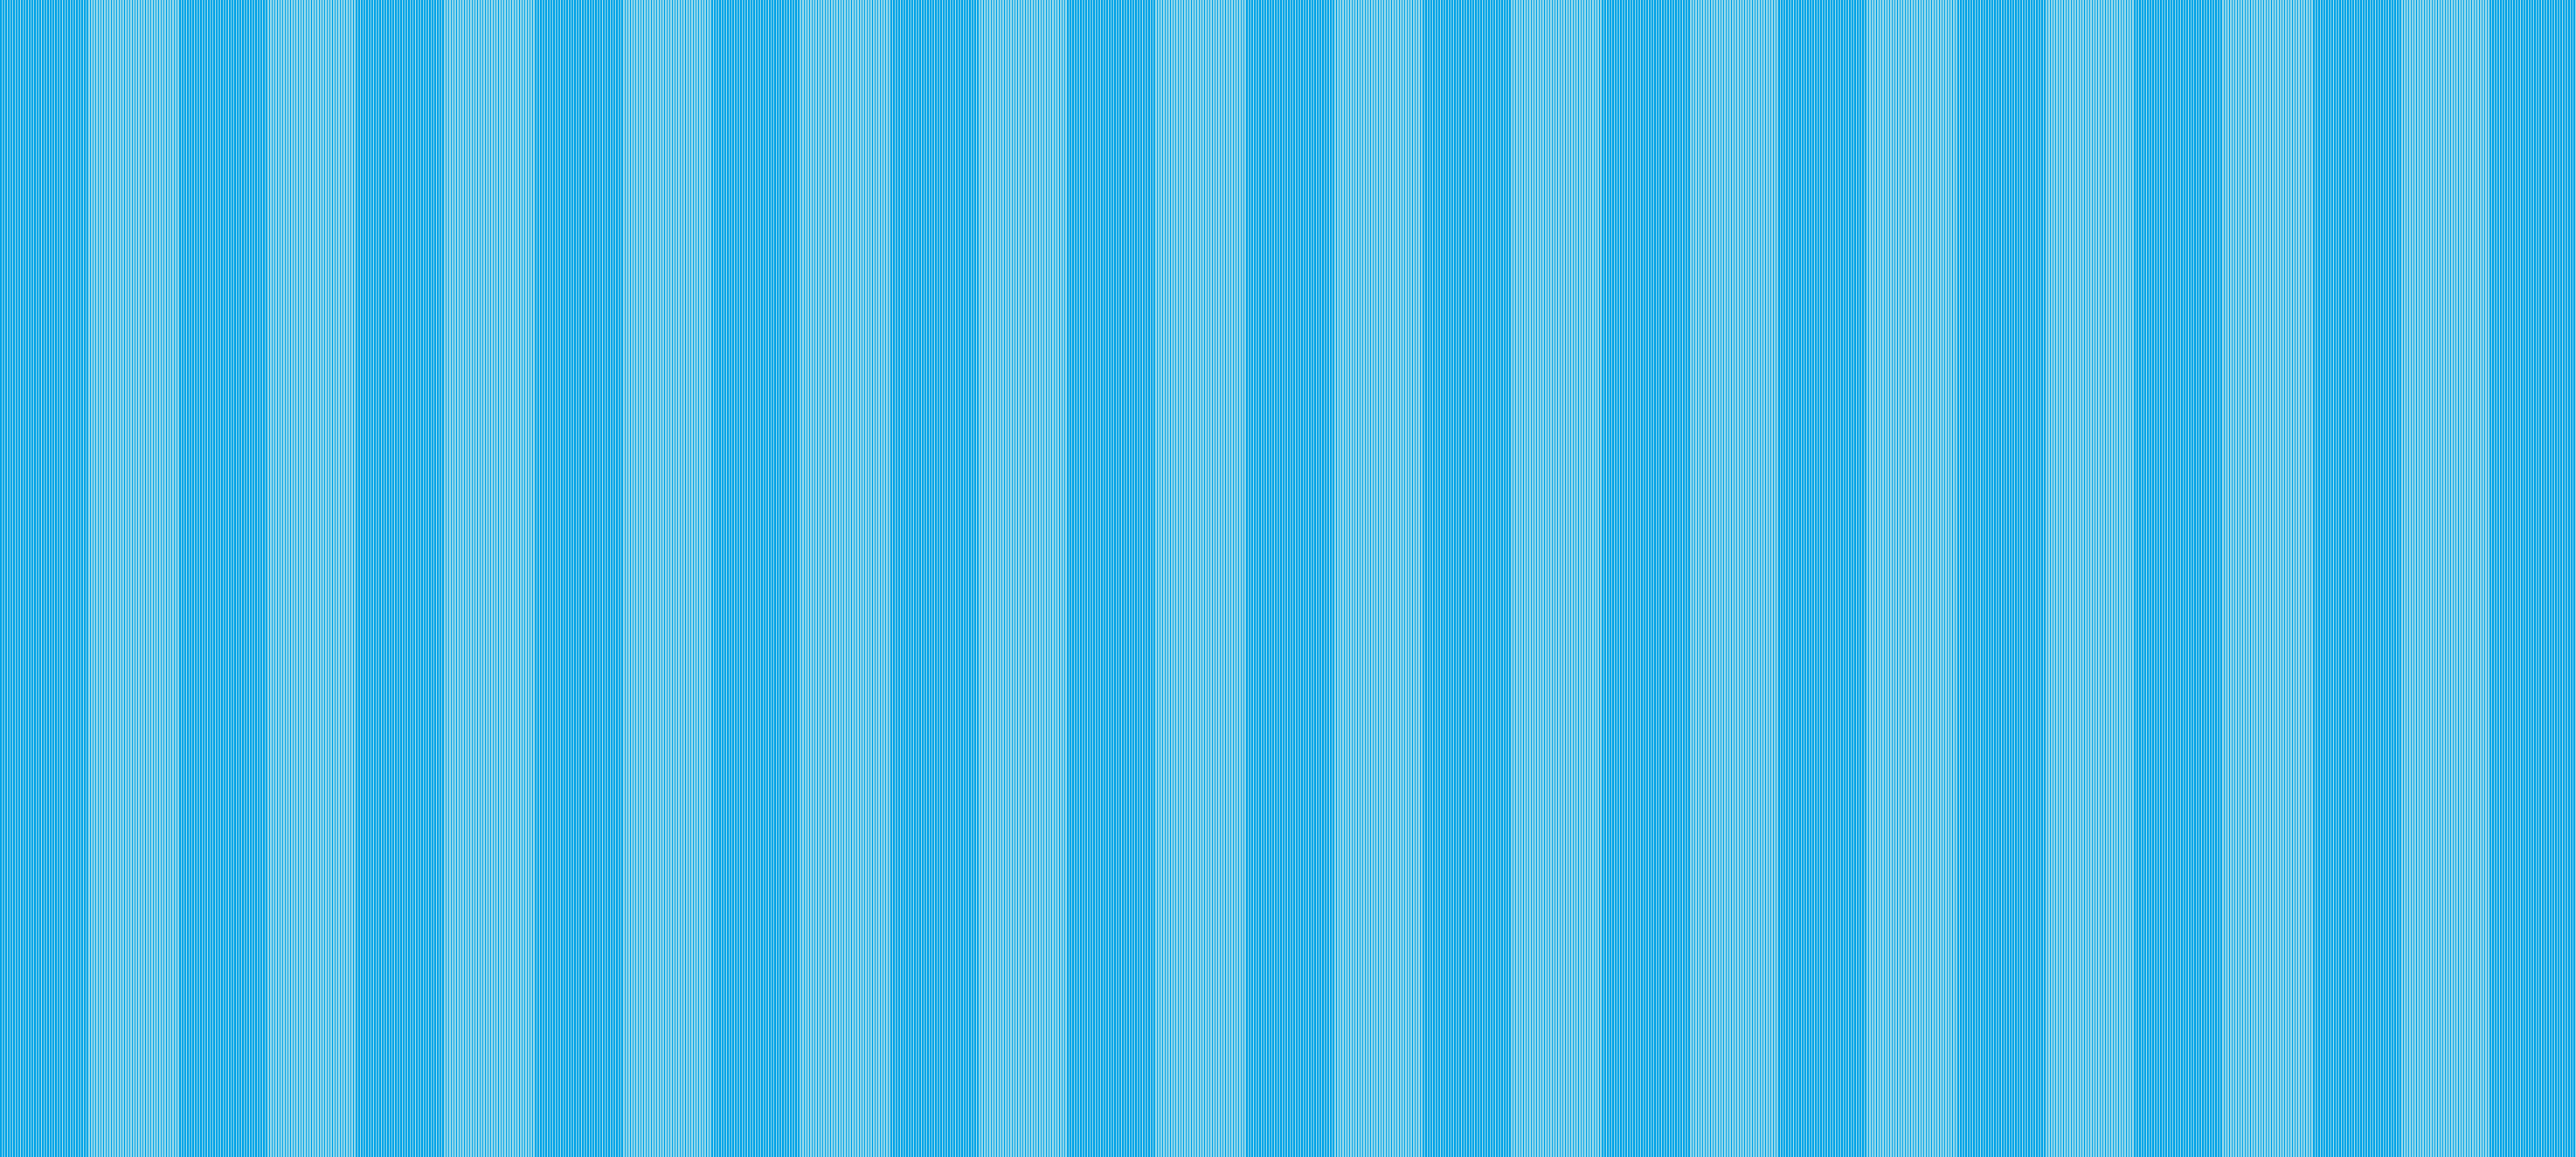 Blue And Yellow Striped Wallpaper: Blue Stripes Wallpaper/background By XxDannehxX On DeviantArt